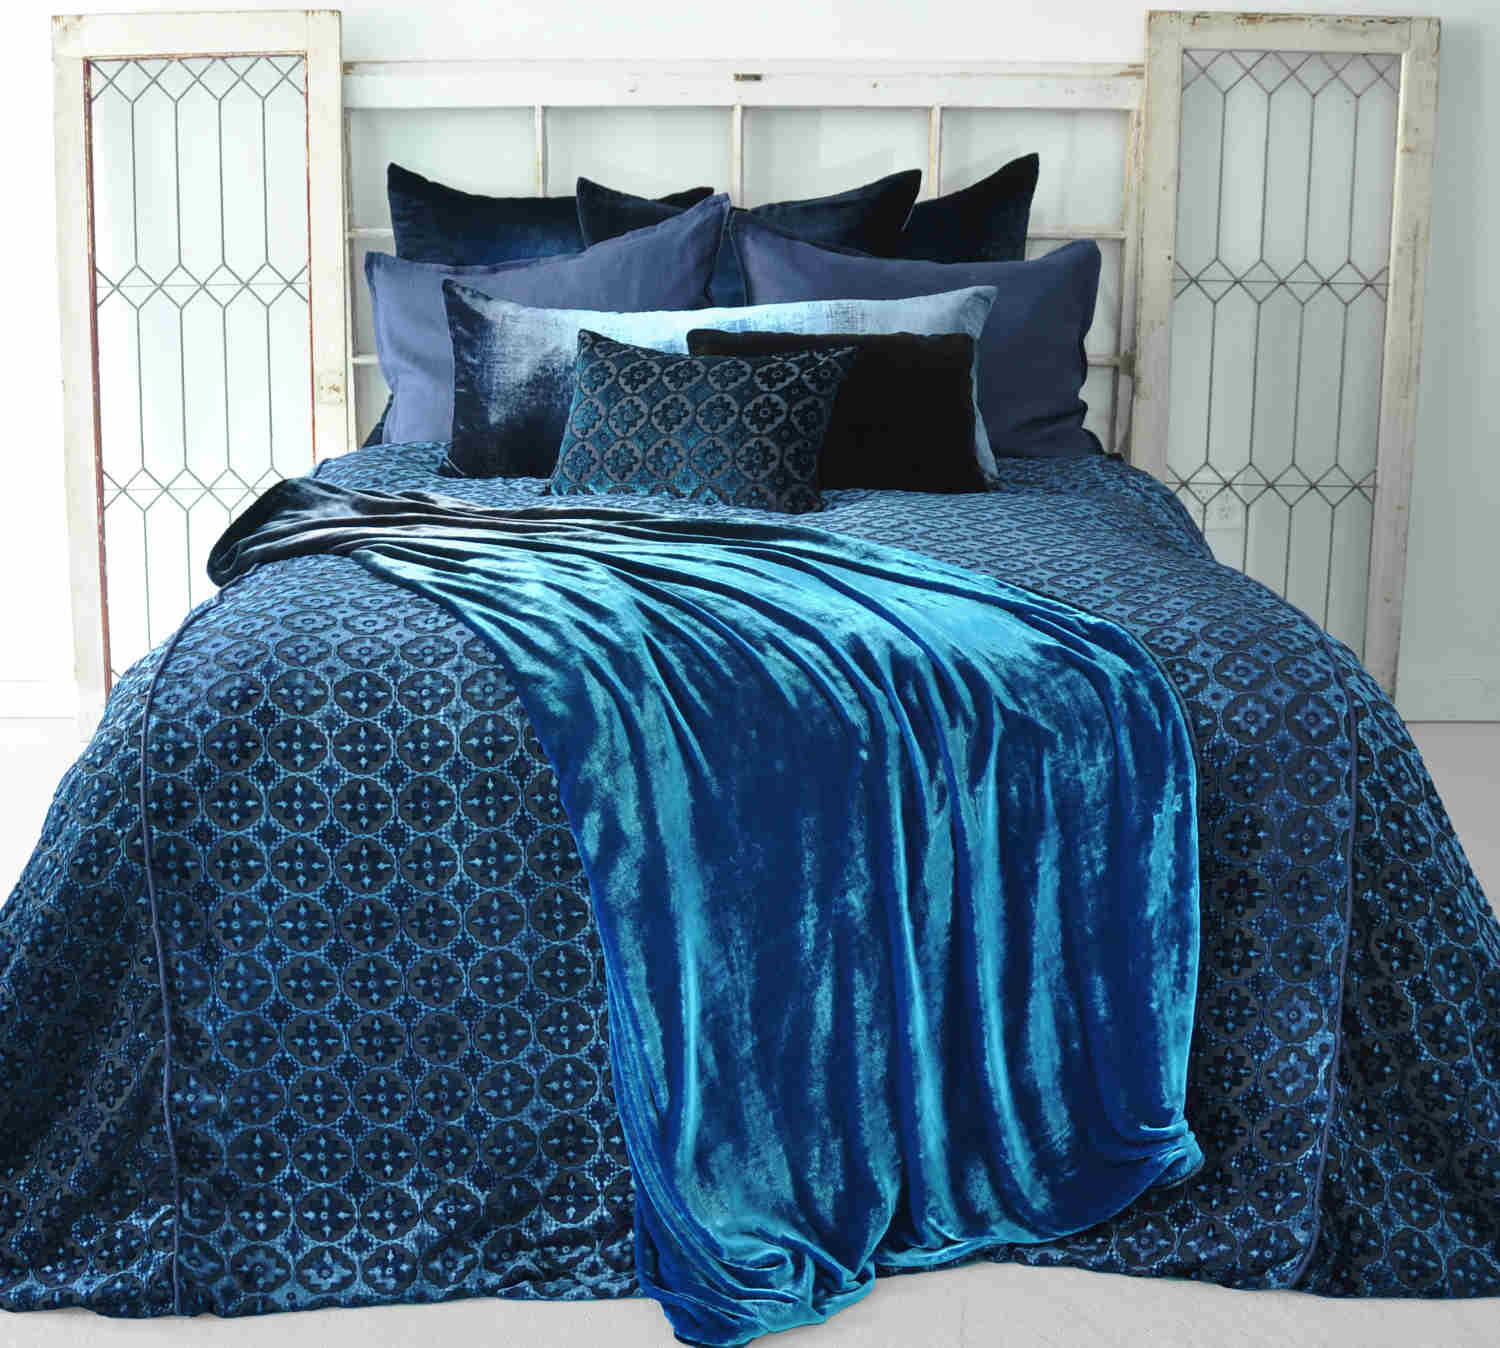 Kevin OBrien Studio Bedding - Casablanca Cobalt Black Bedding